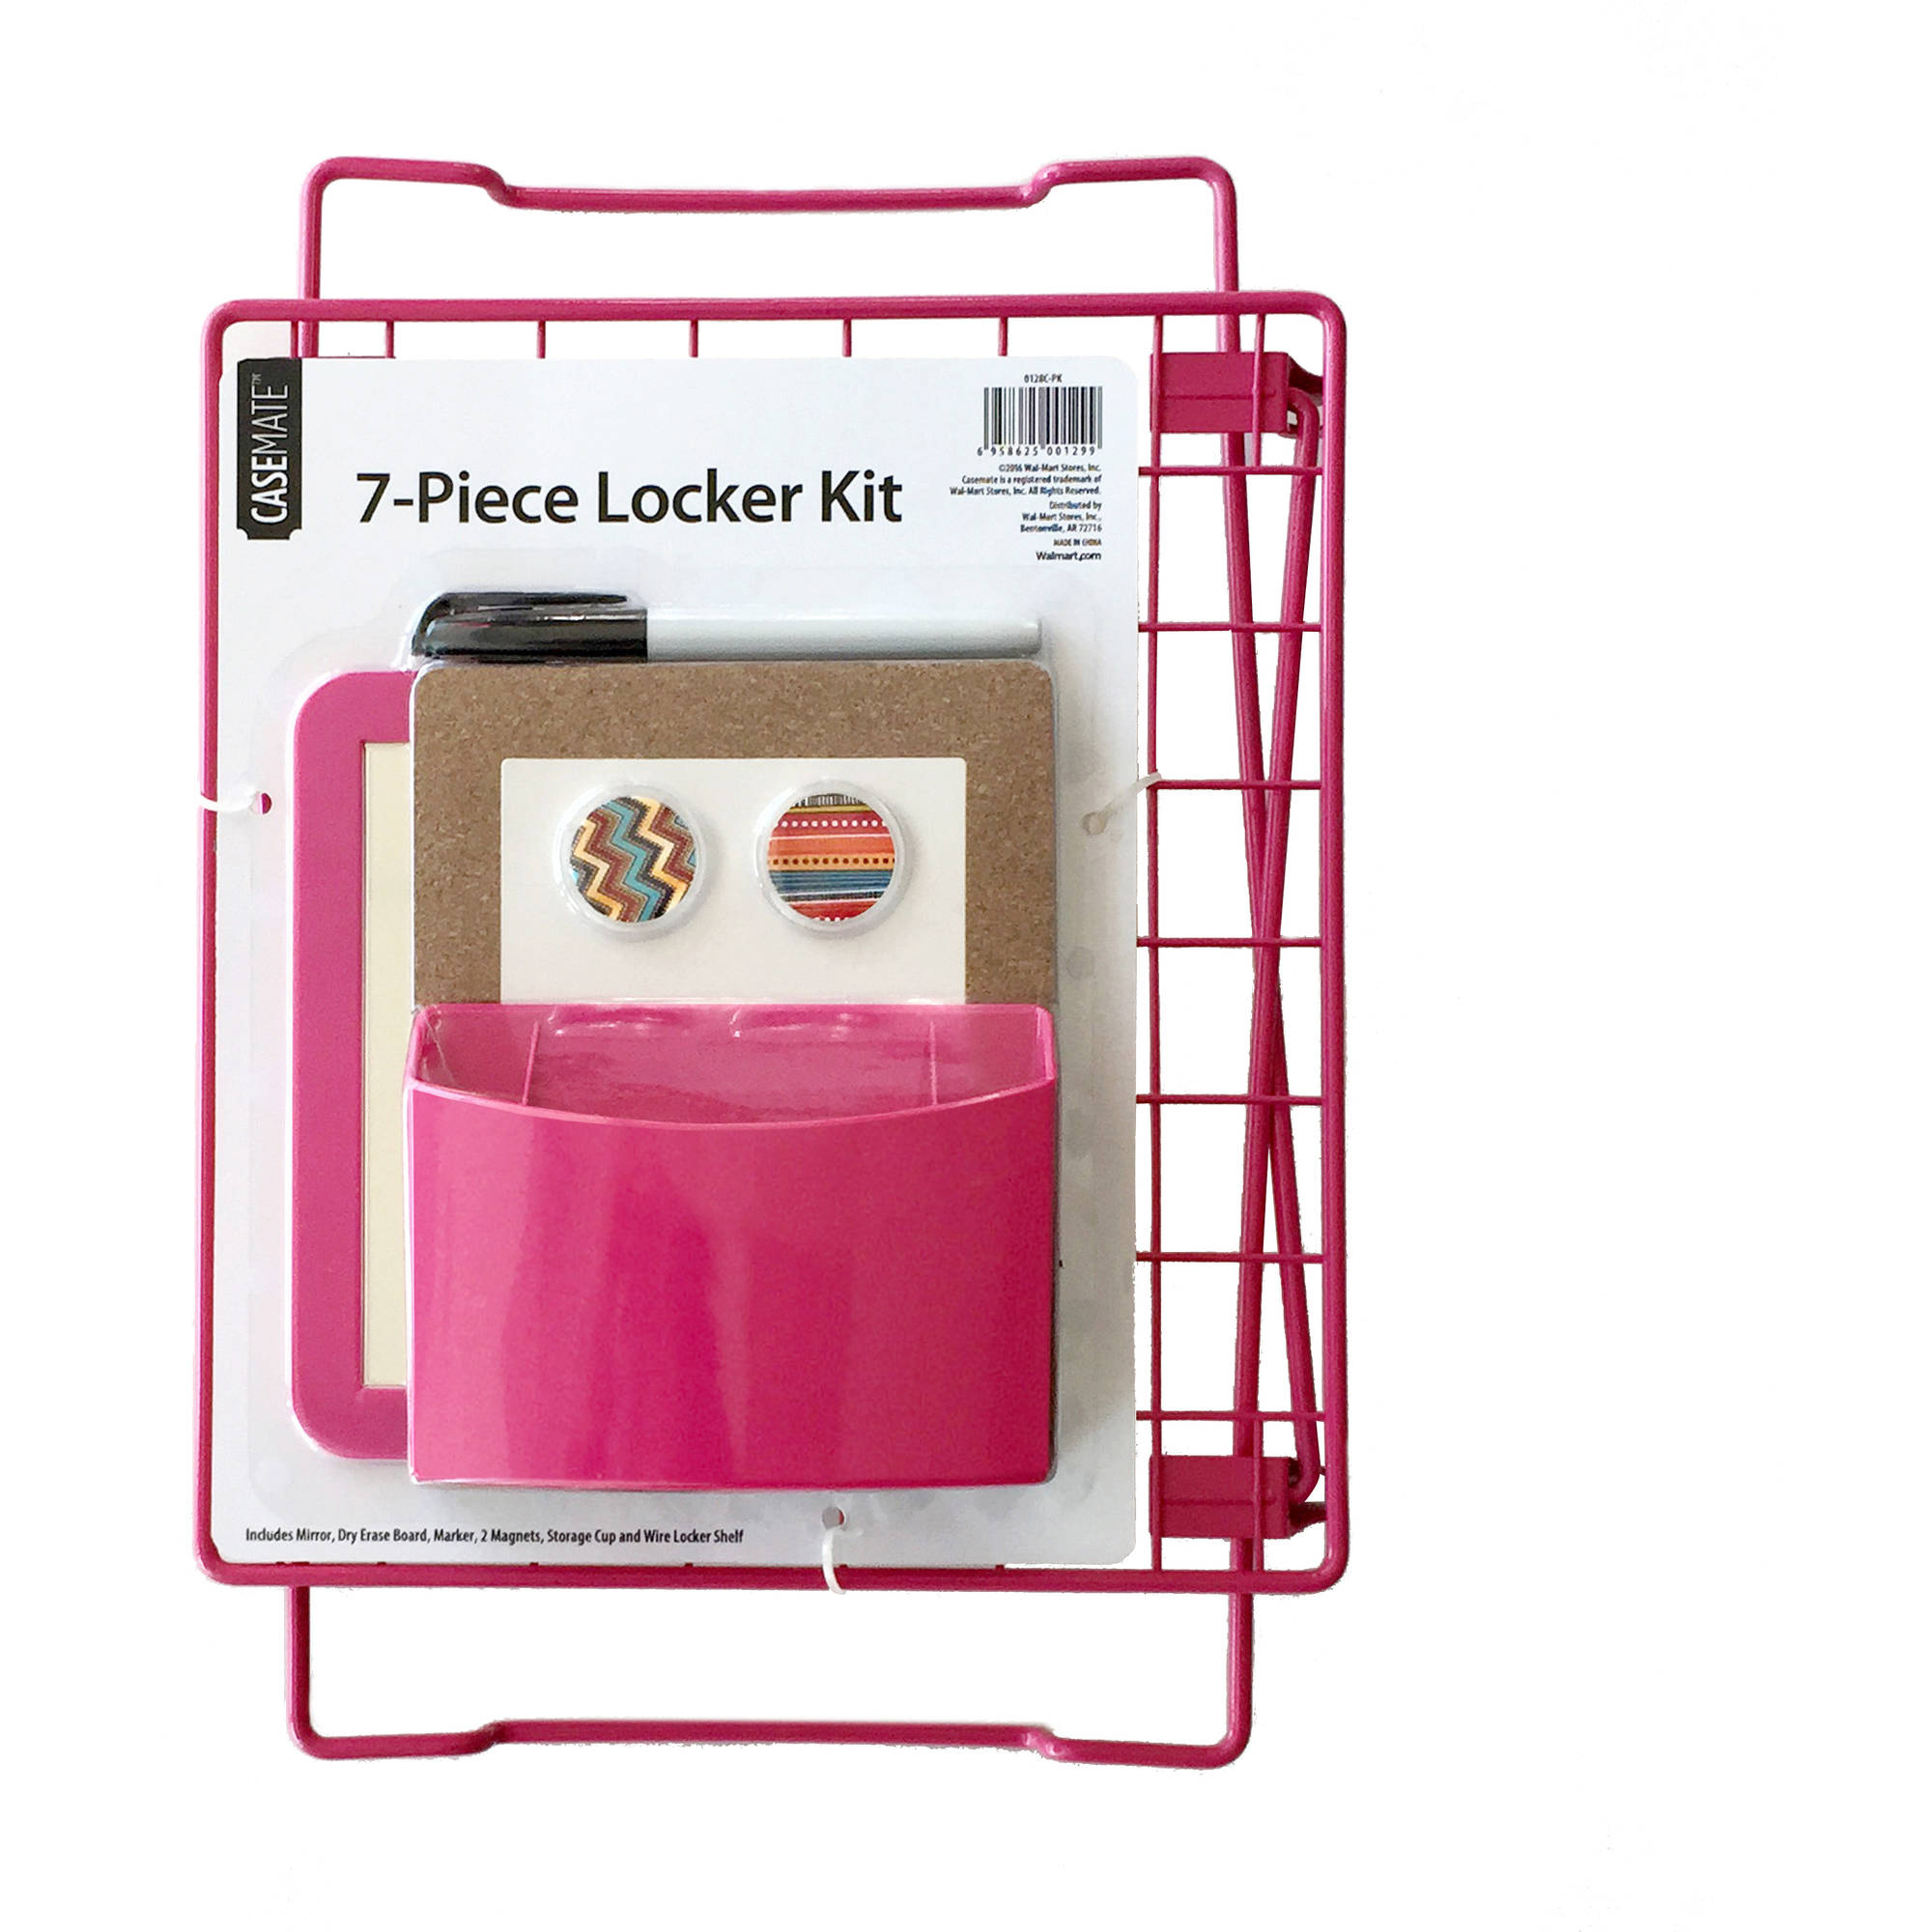 7-Piece Locker Kit, Pink